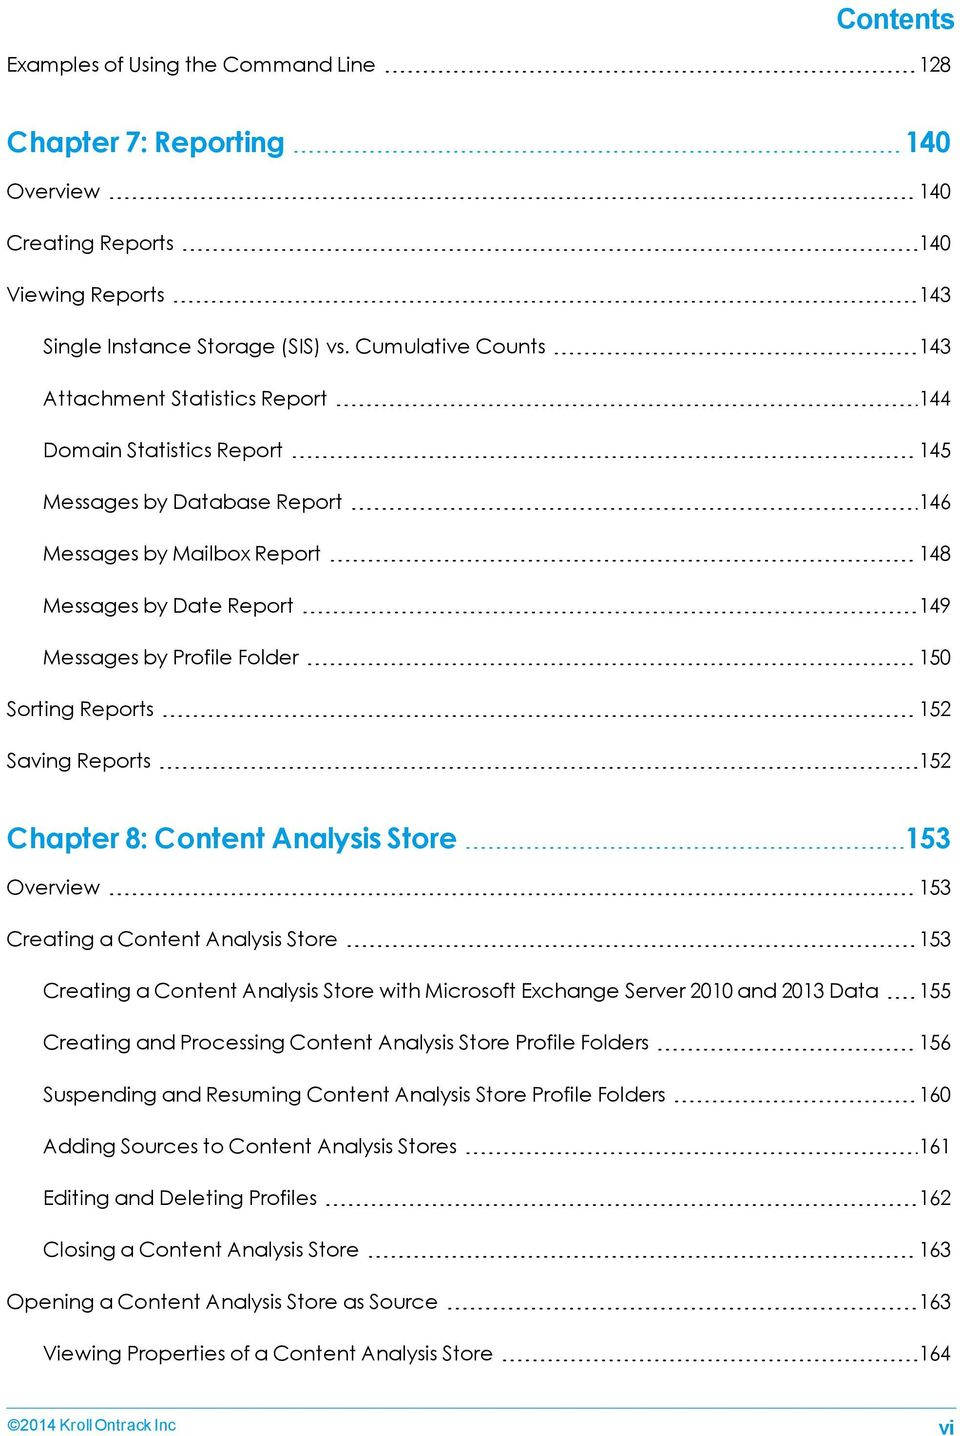 Folder 150 Sorting Reports 152 Saving Reports 152 Chapter 8: Content Analysis Store 153 Overview 153 Creating a Content Analysis Store 153 Creating a Content Analysis Store with Microsoft Exchange